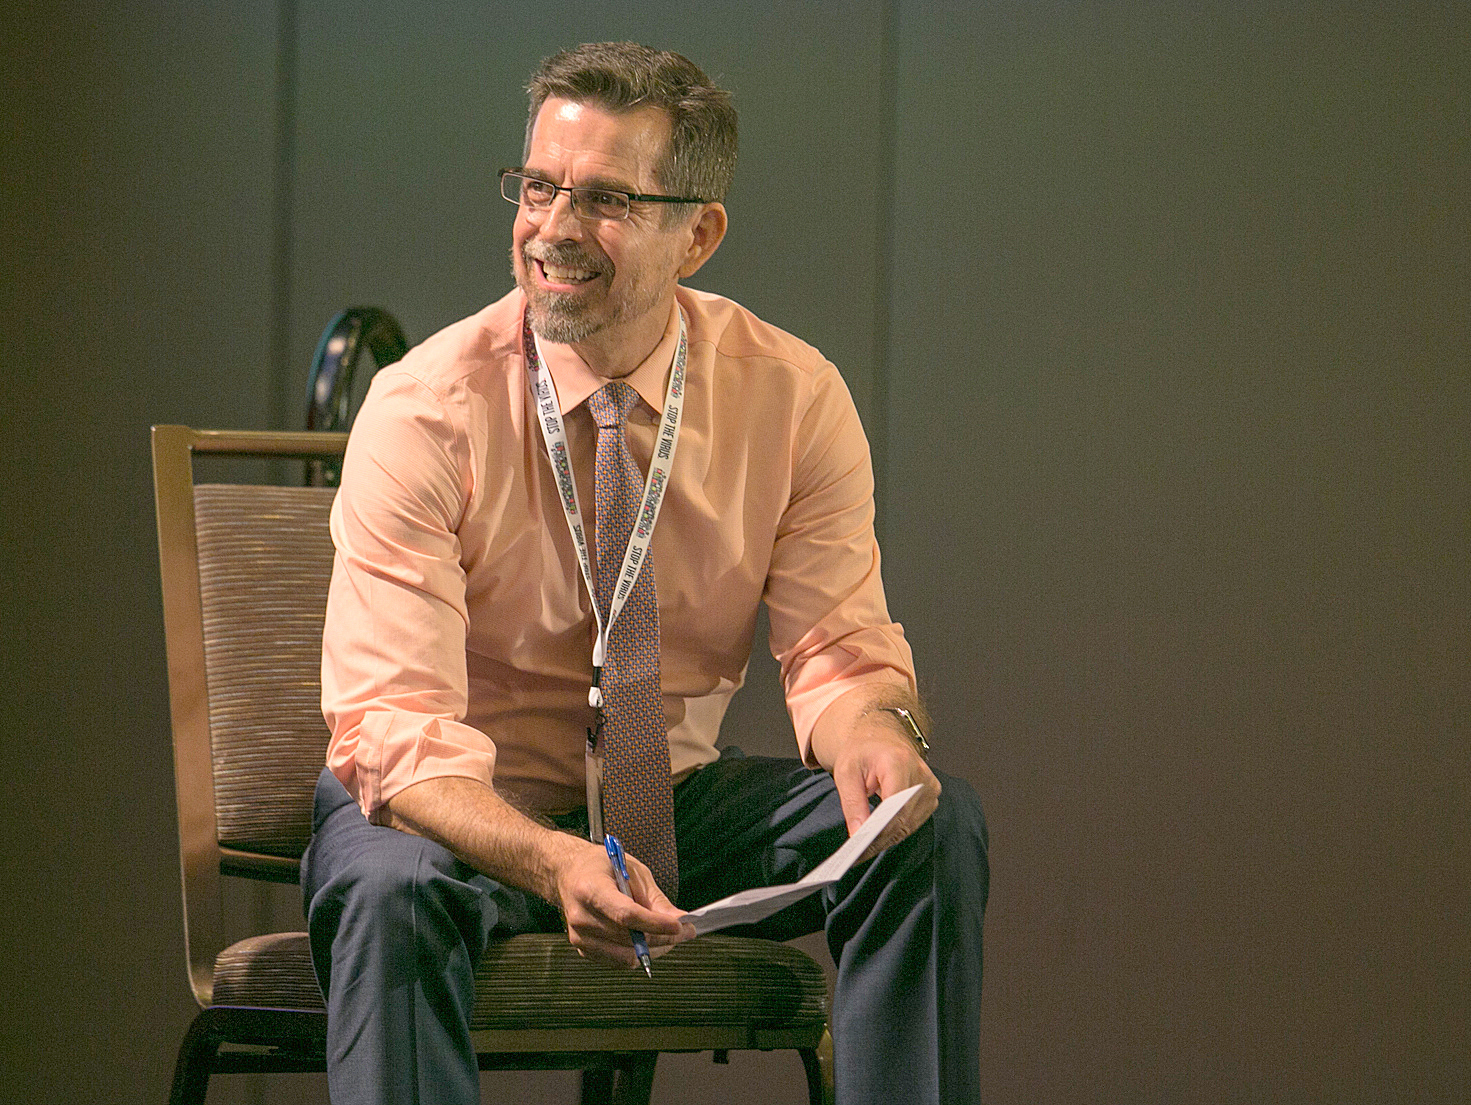 Rich Wolitski - USCA2016 - smiling on stage - resized and brightened - sep 2016